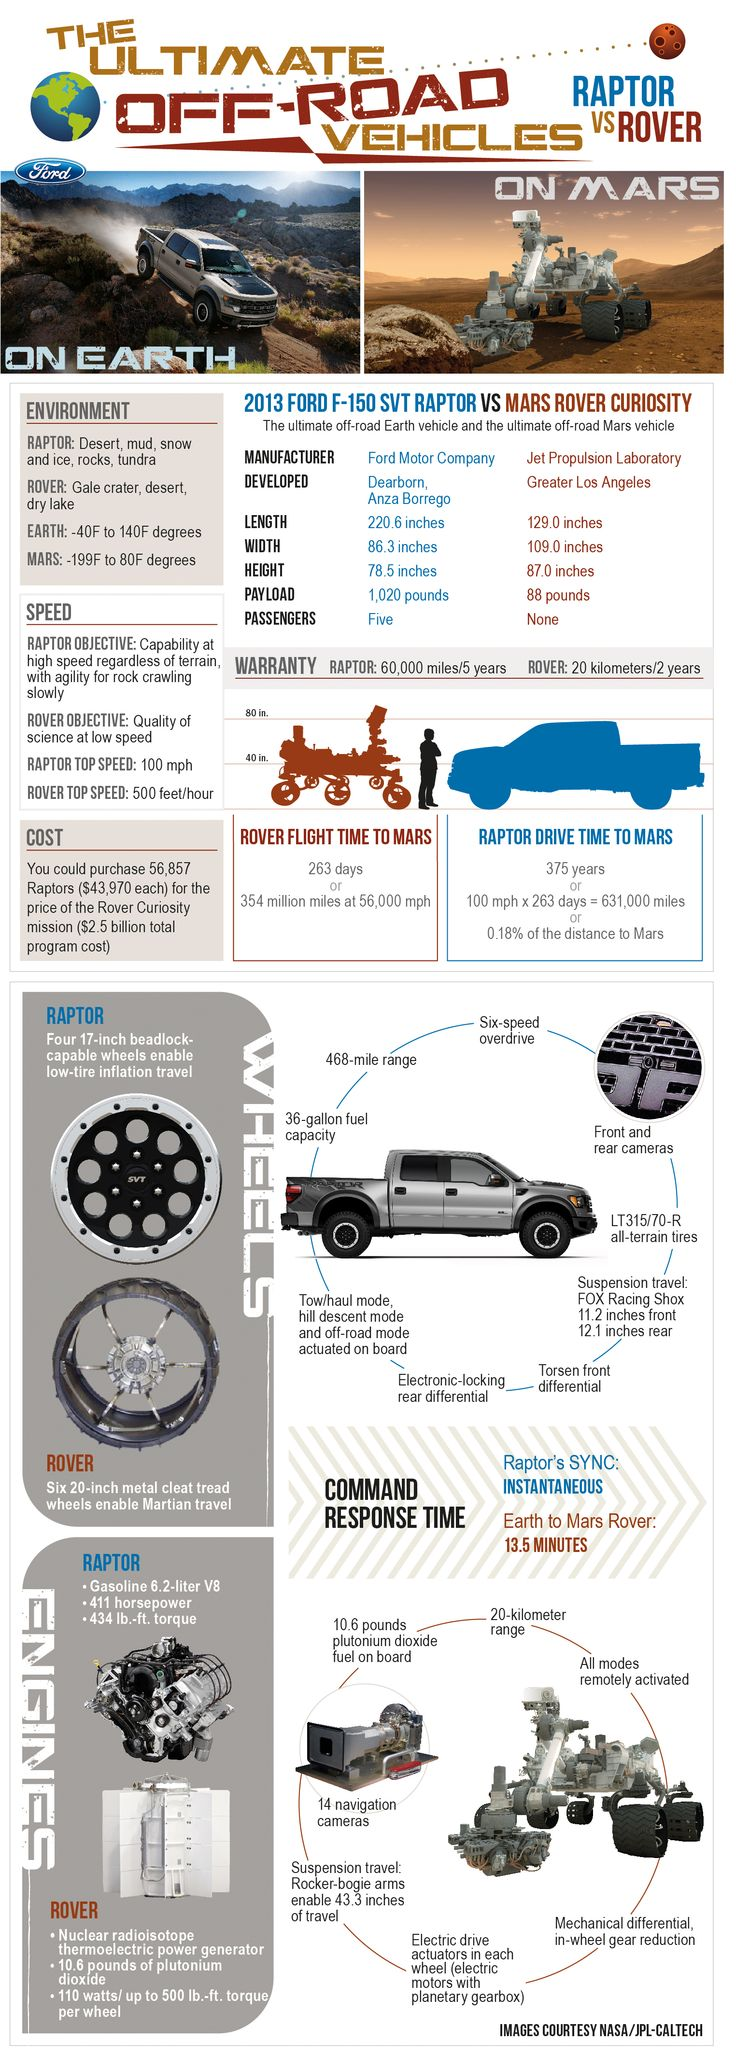 This Ford Motor Co. graphic compares the new NASA Mars rover Curiosity to Ford's F-150 SVT Raptor truck.